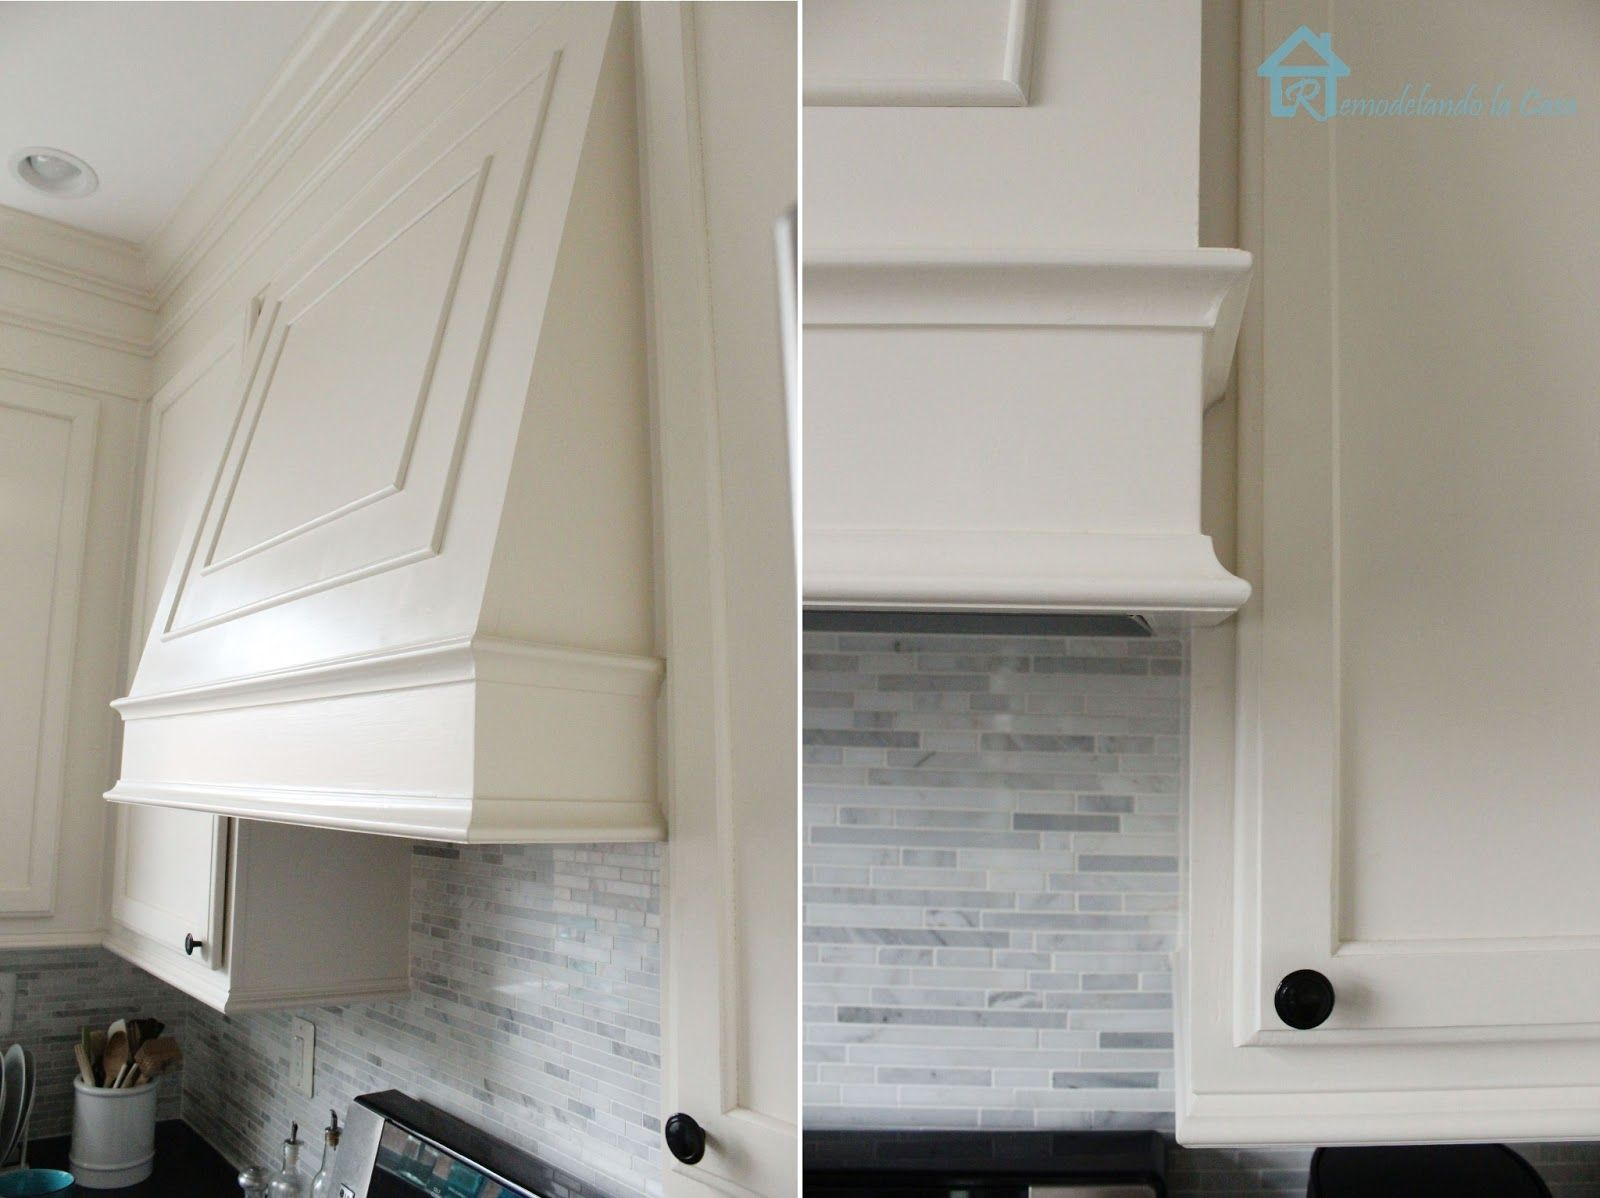 How To Build A Range Hood Hoods Ranges And Kitchens